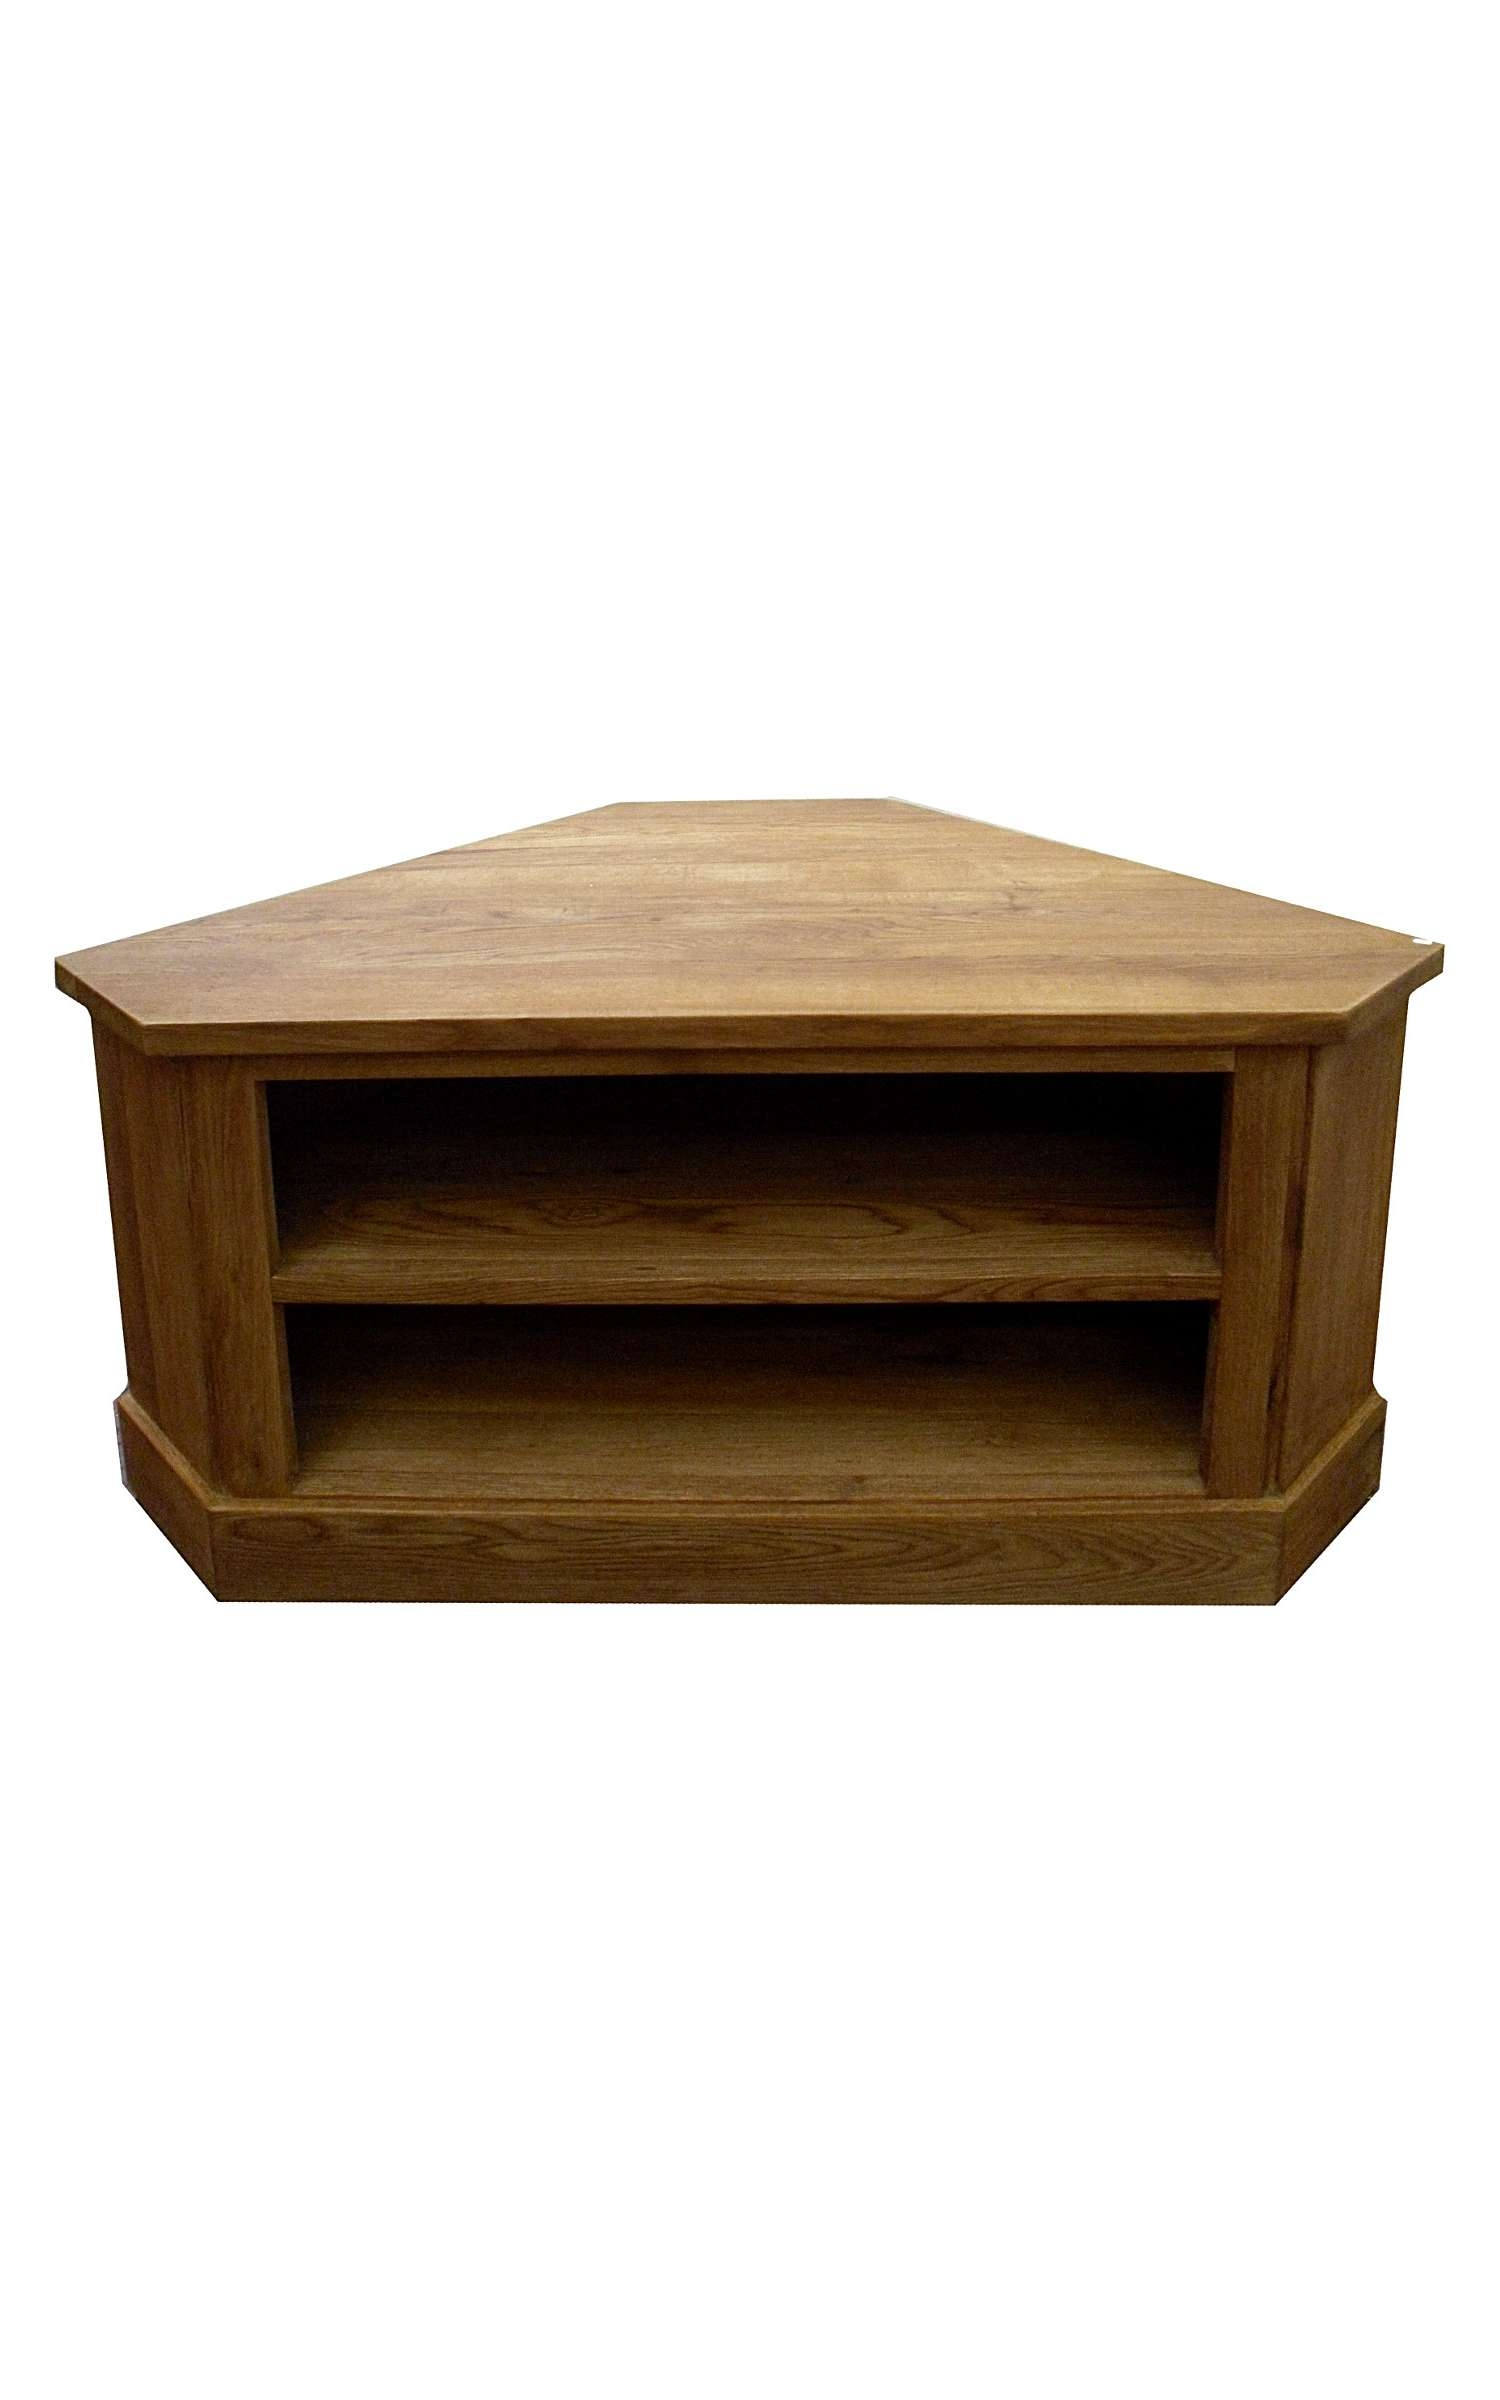 Small Wooden Corner Tv Stand Console Cabinet With Fireplace And Throughout Small Corner Tv Cabinets (View 7 of 20)